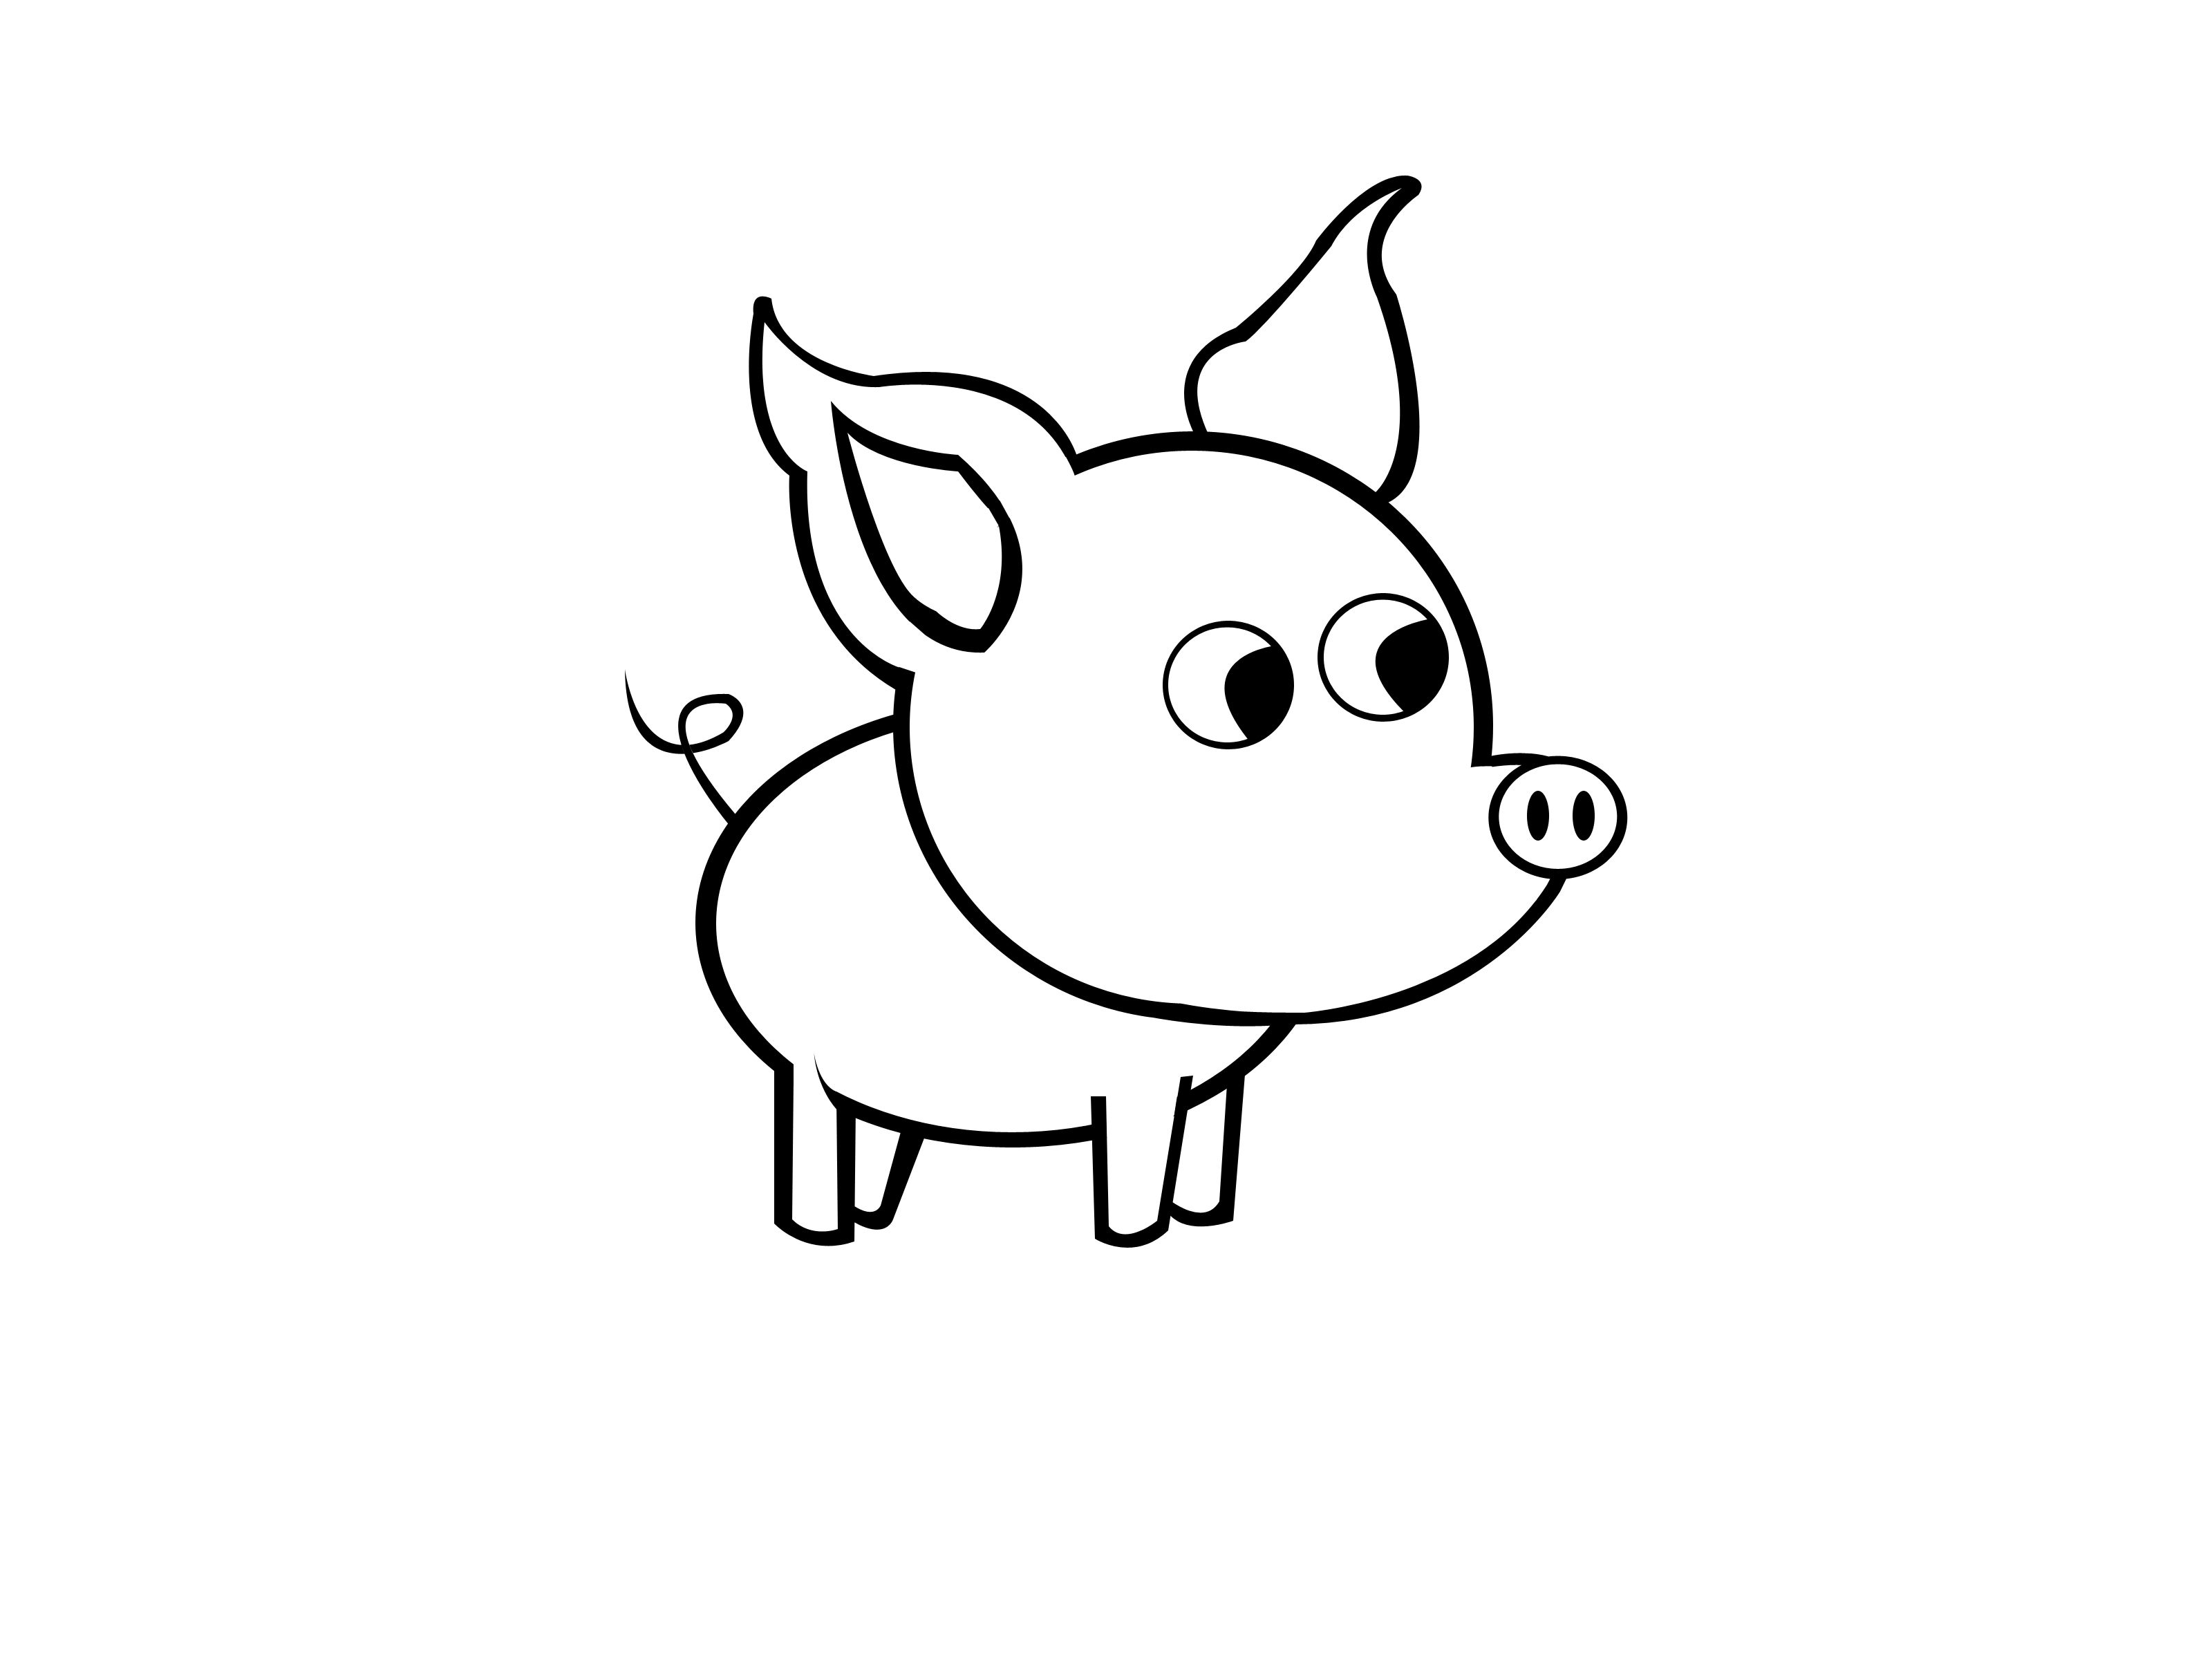 3200x2400 Simple Pictures For Drawing How To Draw A Simple Pig 9 Steps (With